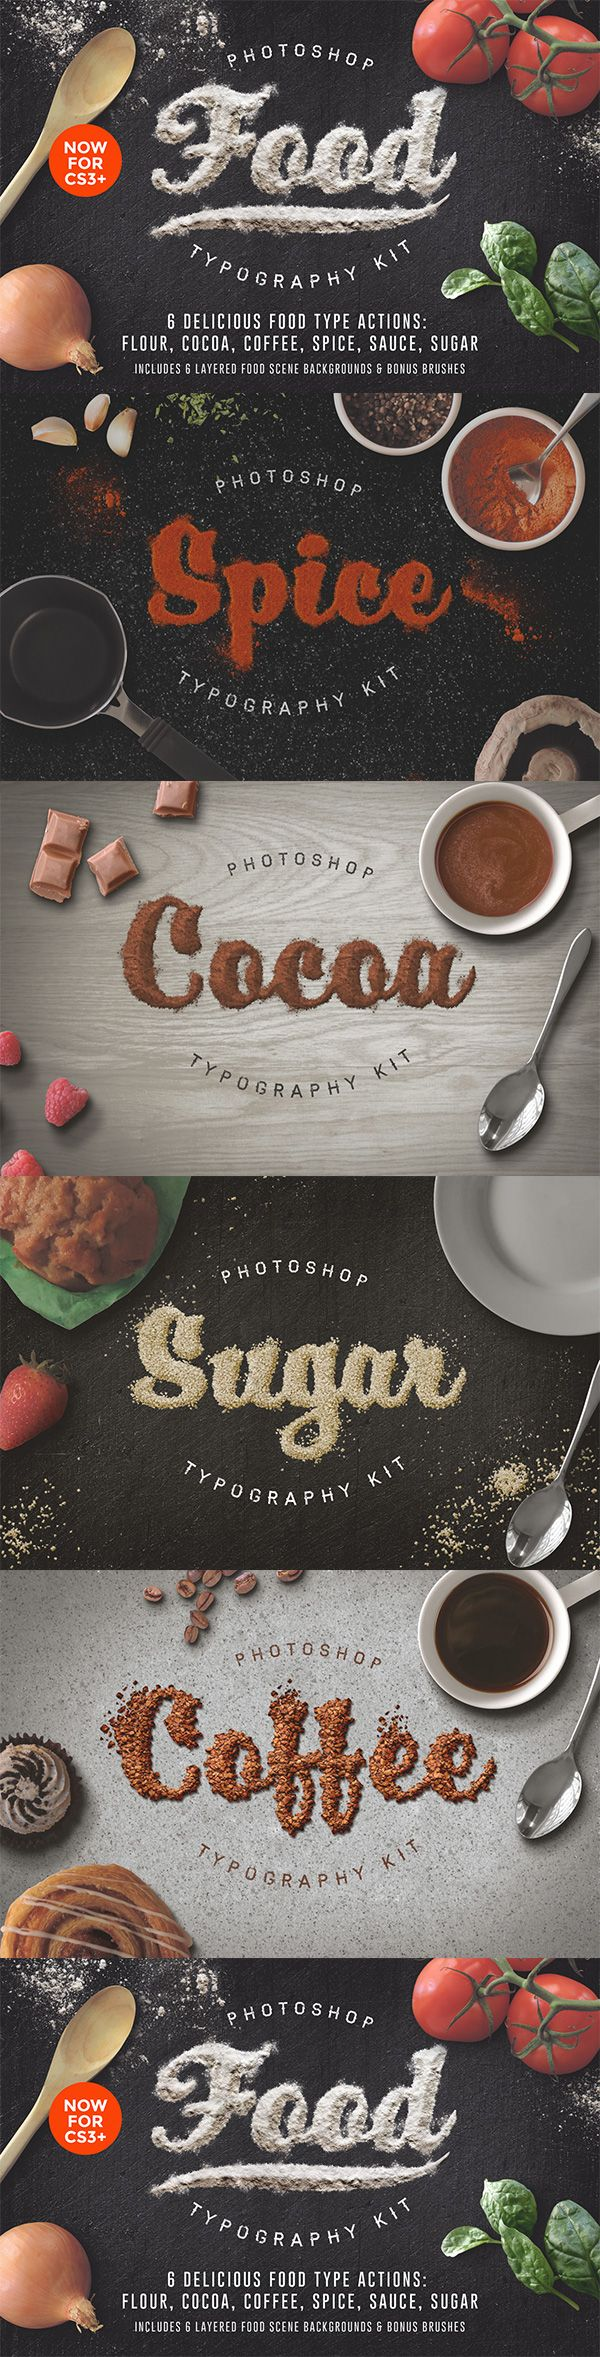 A set of 6 delicious photoshop actions to make any font look good enough to eat! Includes 6 layered food scenes from the preview images 2400x1600 @ 72dpi Bonus grainy, floury and drippy brushes to get messy with!